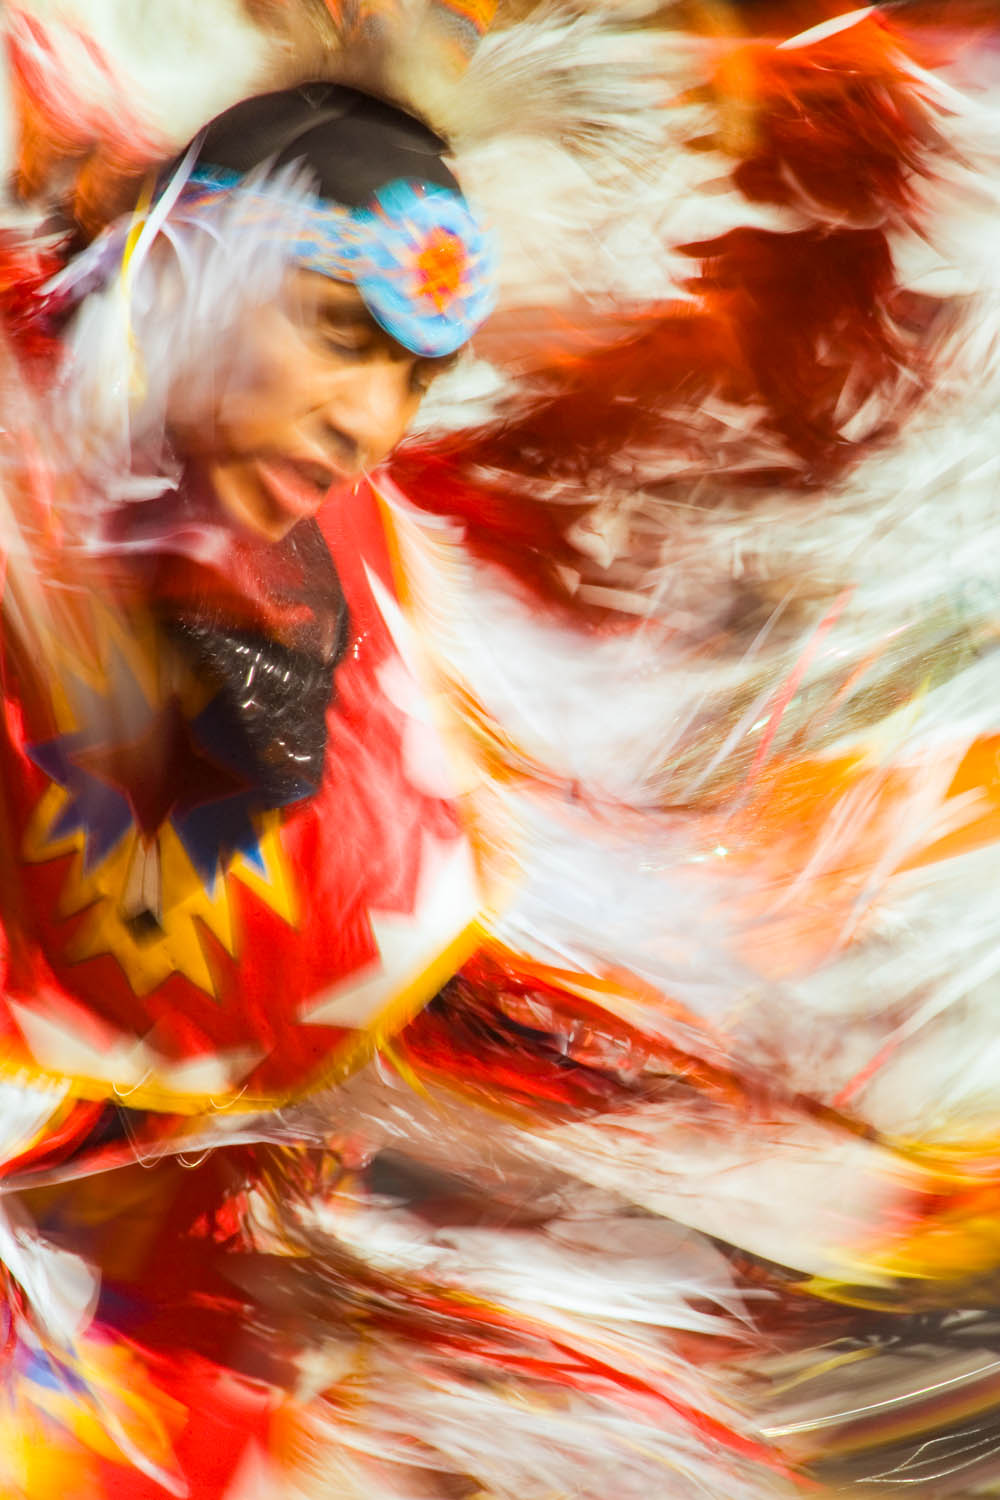 Motion blurs the regalia of a spinning Native American dancer while leaving a somewhat sharp face